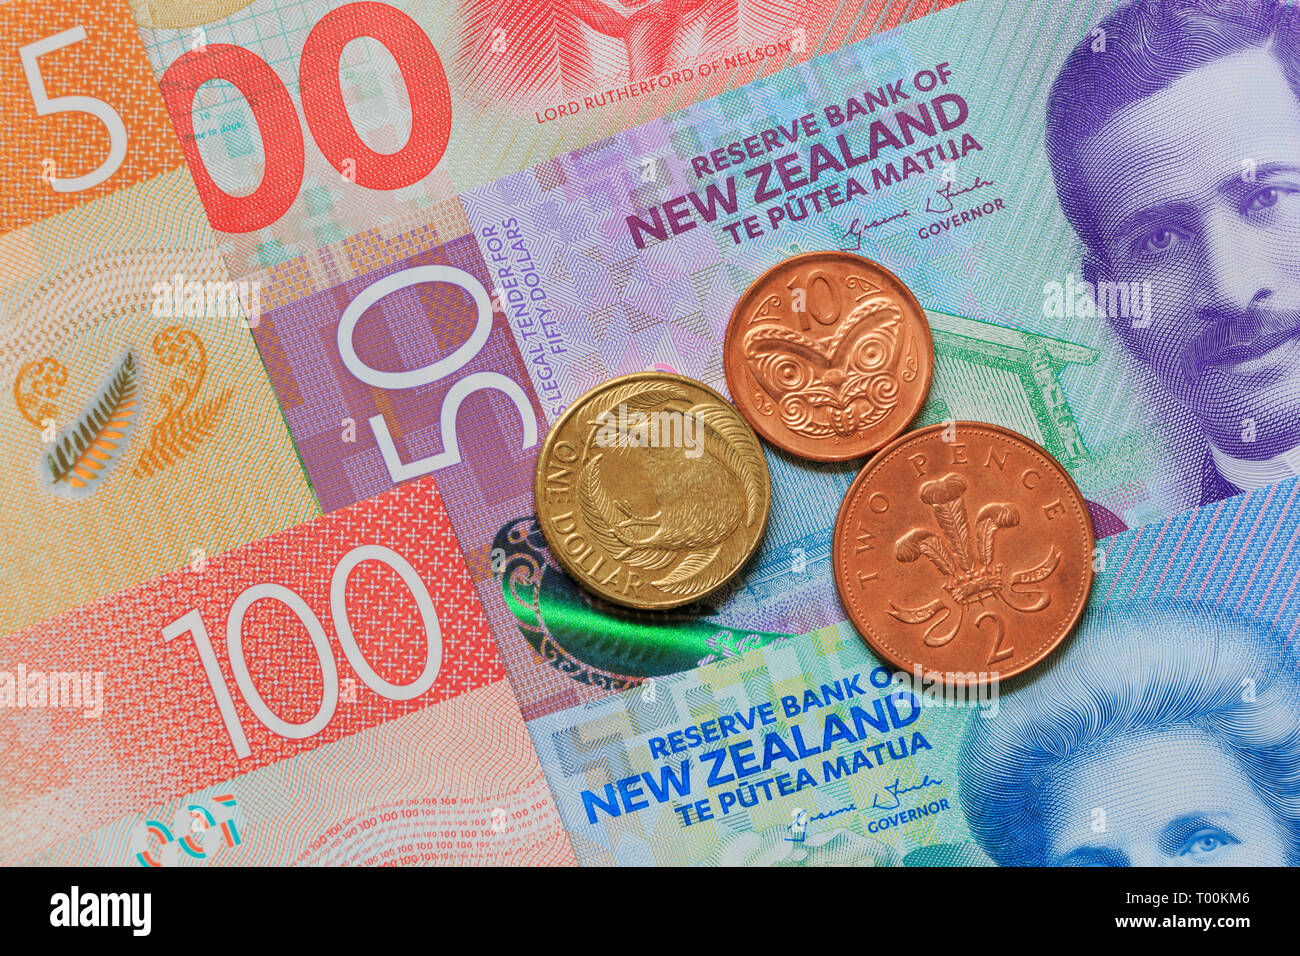 New Zealand paper currency & coins, Auckland, New Zealand Stock Photo